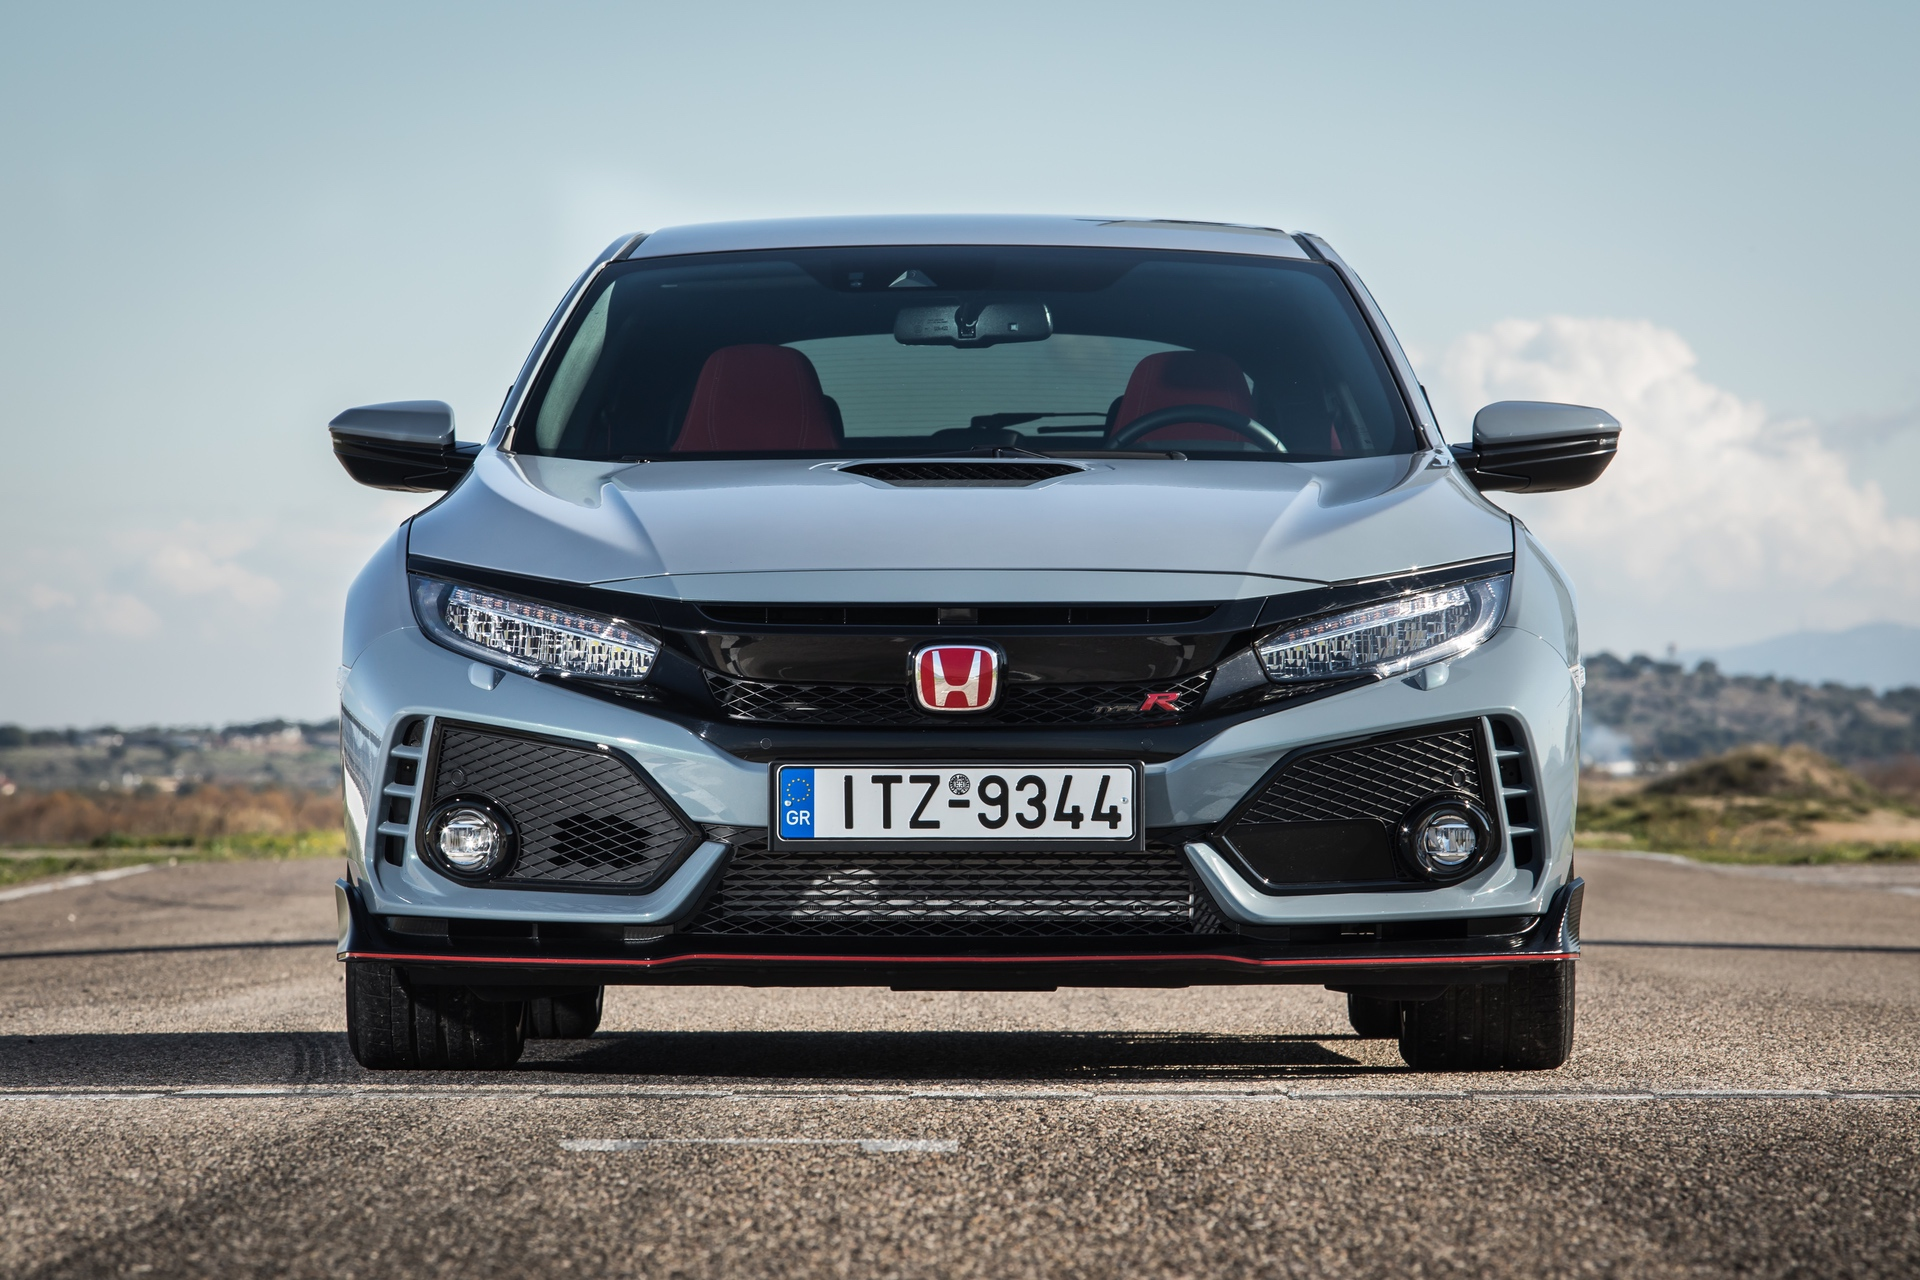 Track_Test_Honda_Civic_Type_R_031